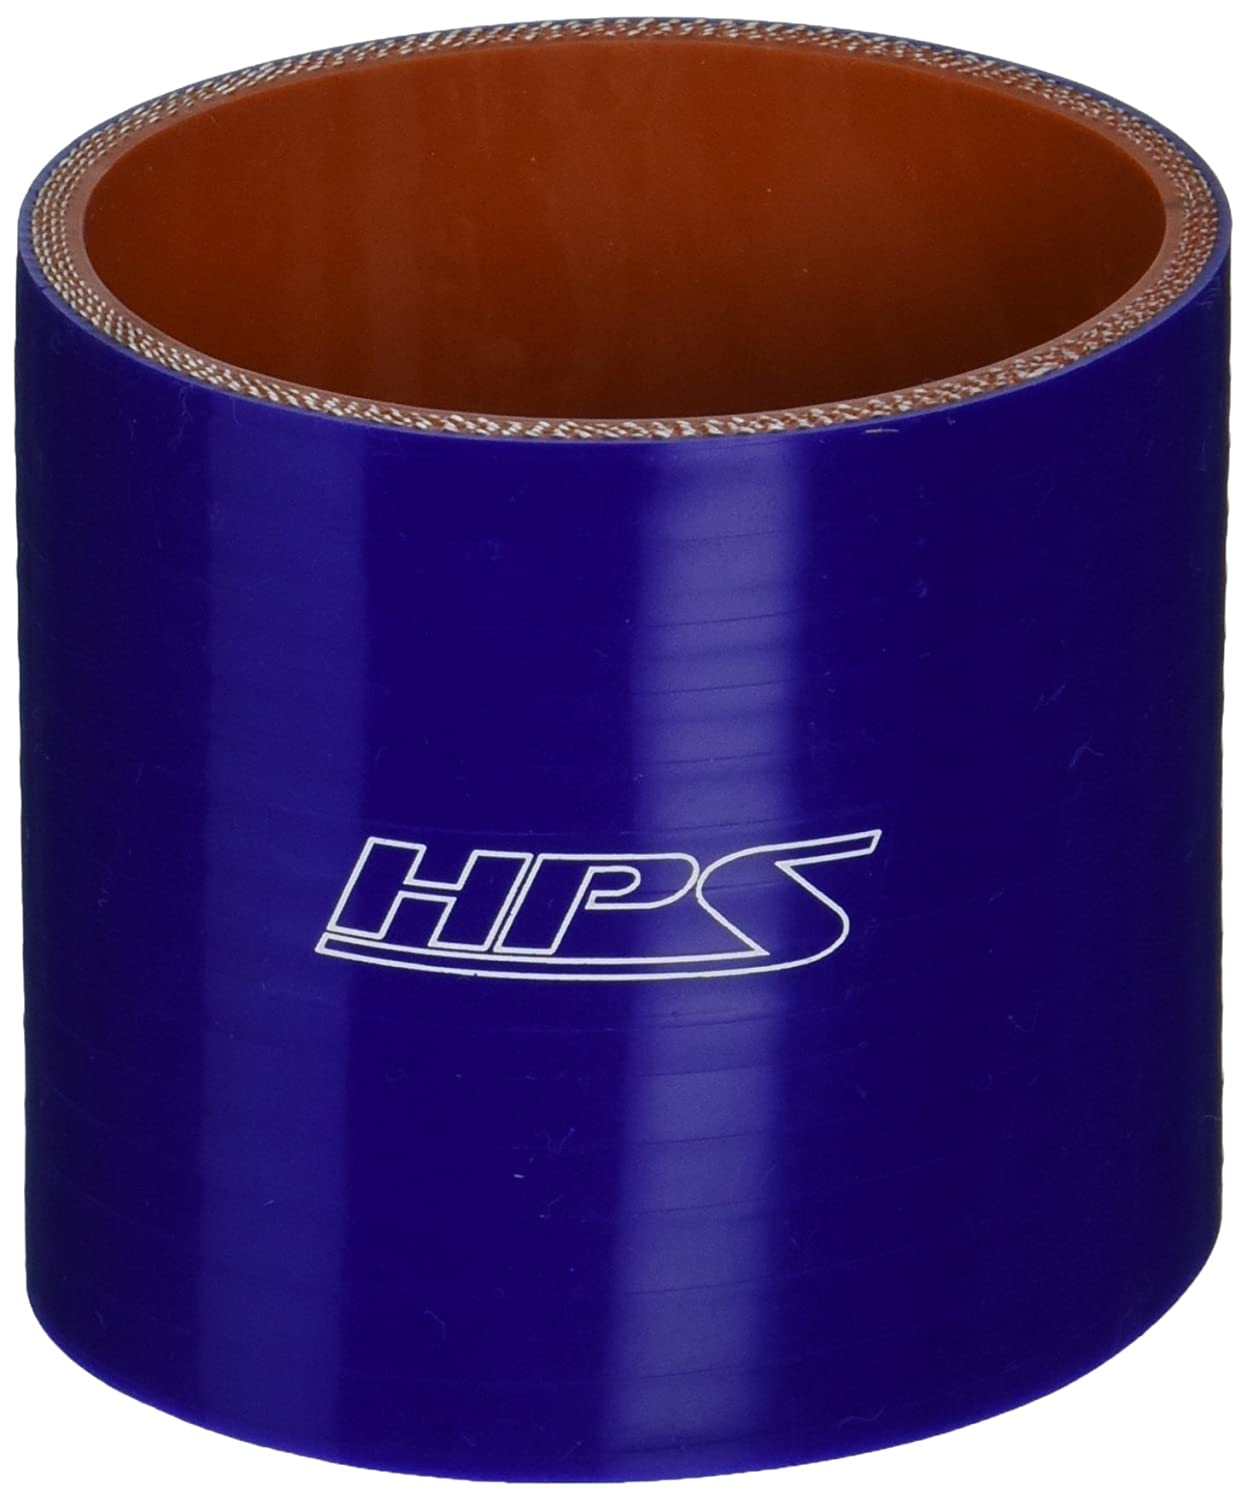 HPS HTSC-275-BLUE Silicone High Temperature 4-ply Reinforced Straight Coupler Hose, 75 PSI Maximum Pressure, 3' Length, 2-3/4' ID, Blue 3 Length 2-3/4 ID HPS Silicone Hoses